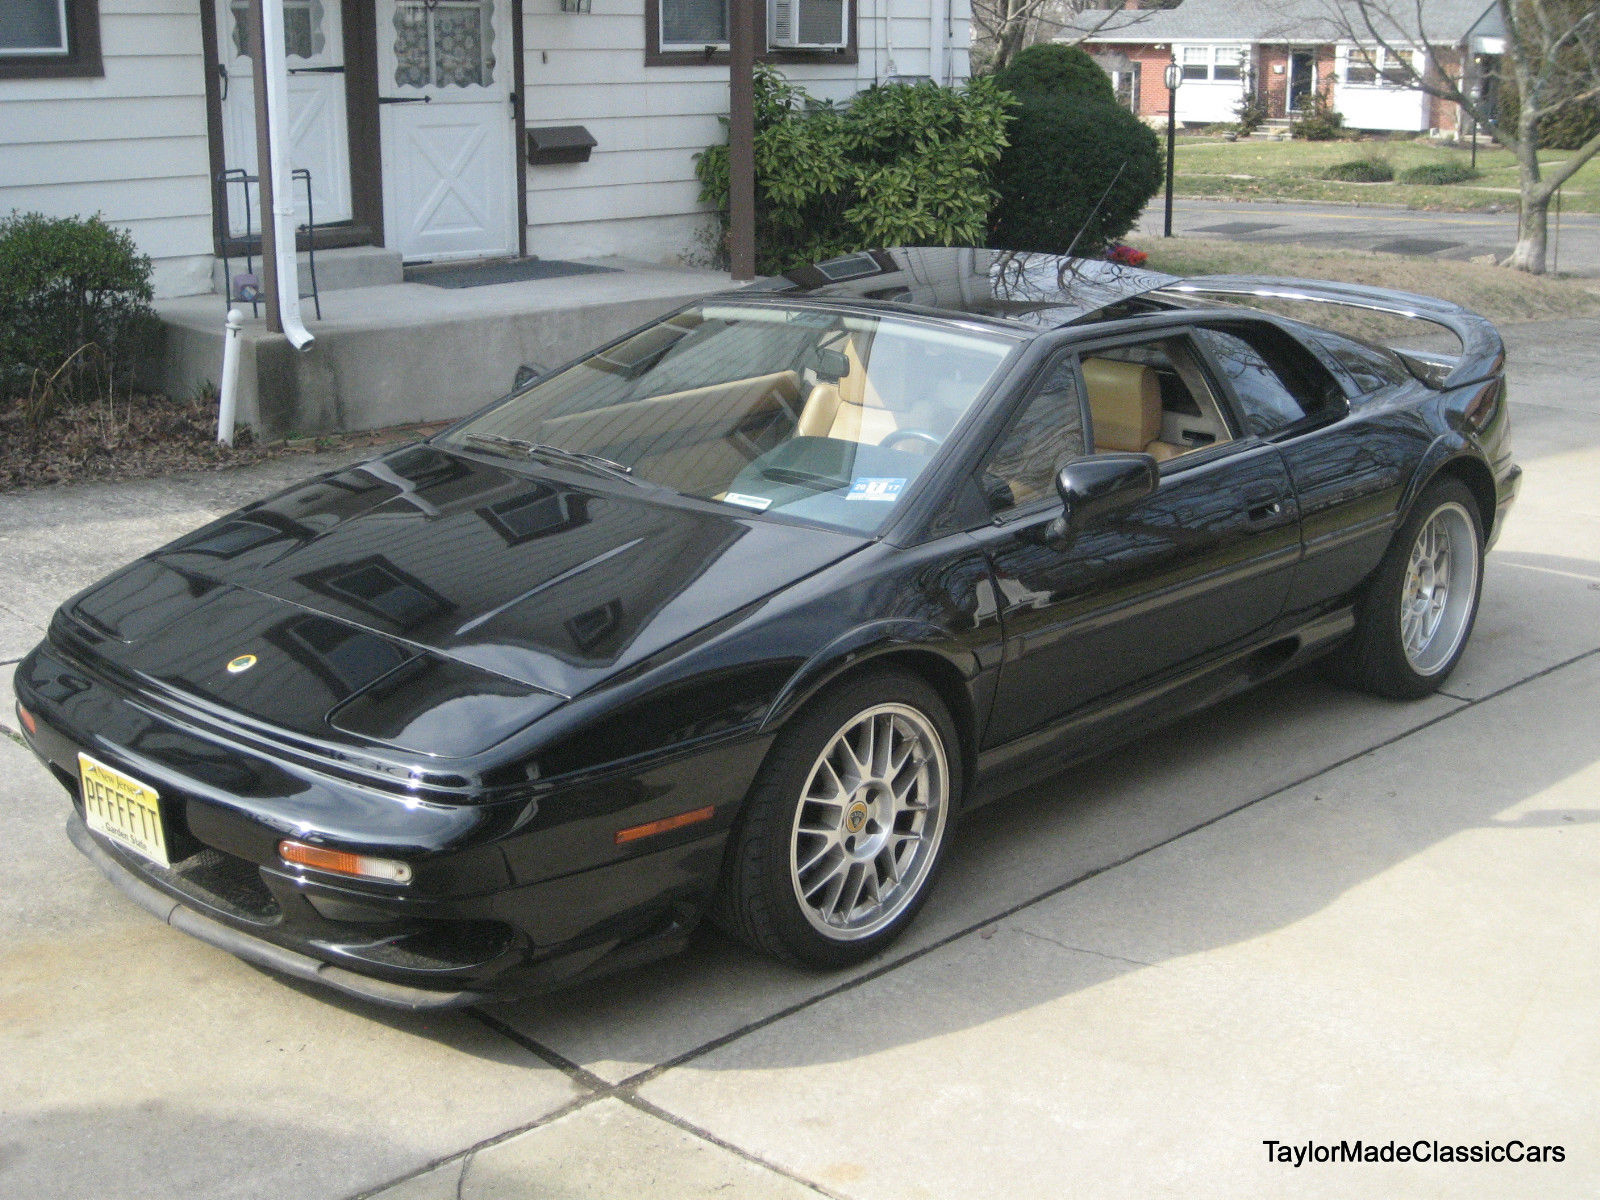 Esprit New Bangshift Lotus Esprit V8 Ebay Find